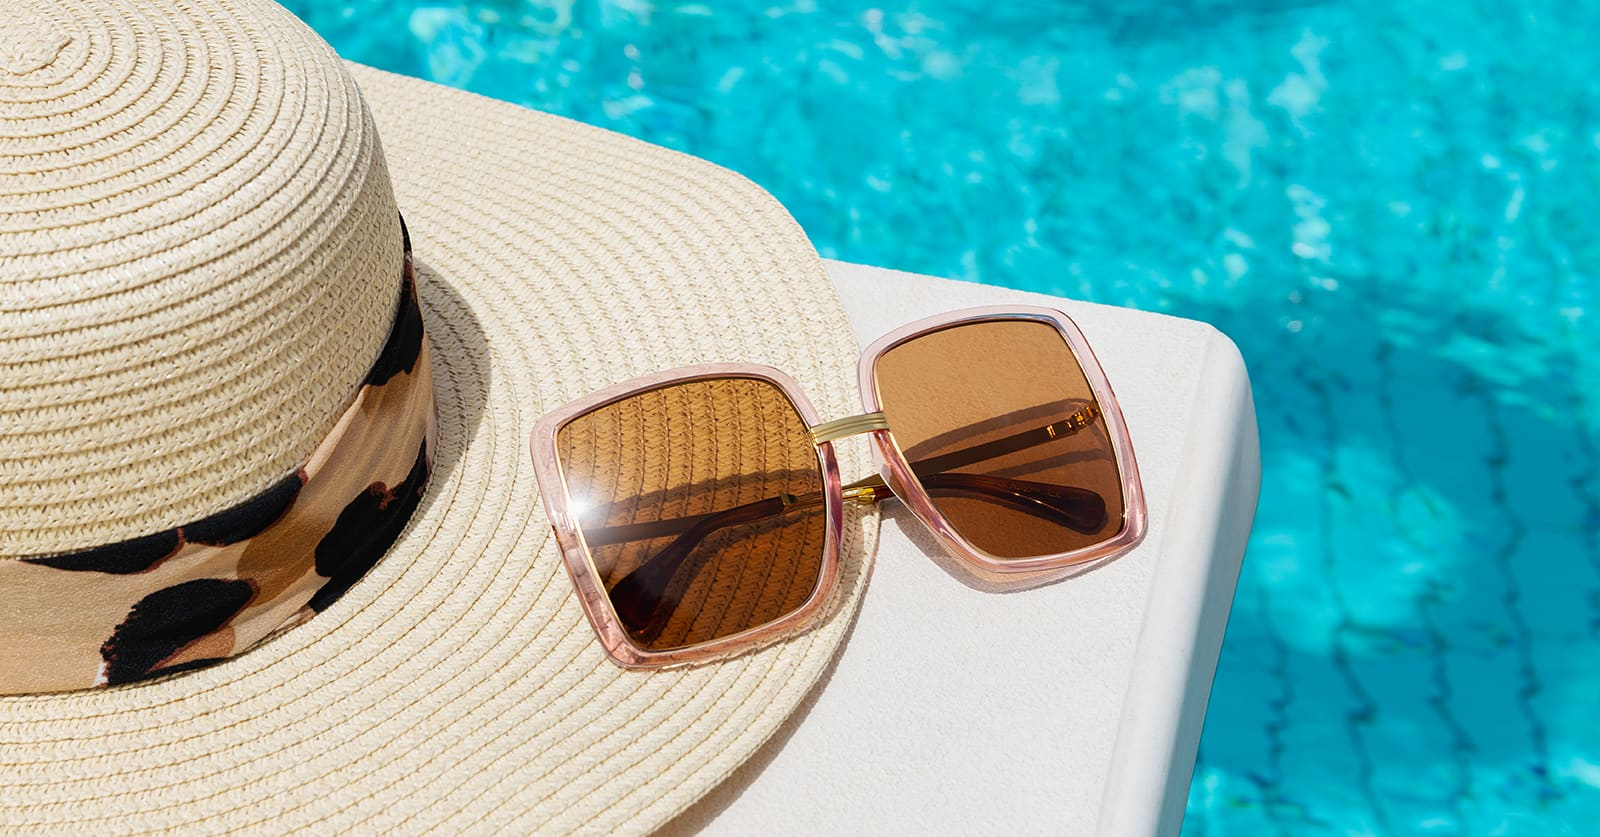 Summer Edit: At the Poolside